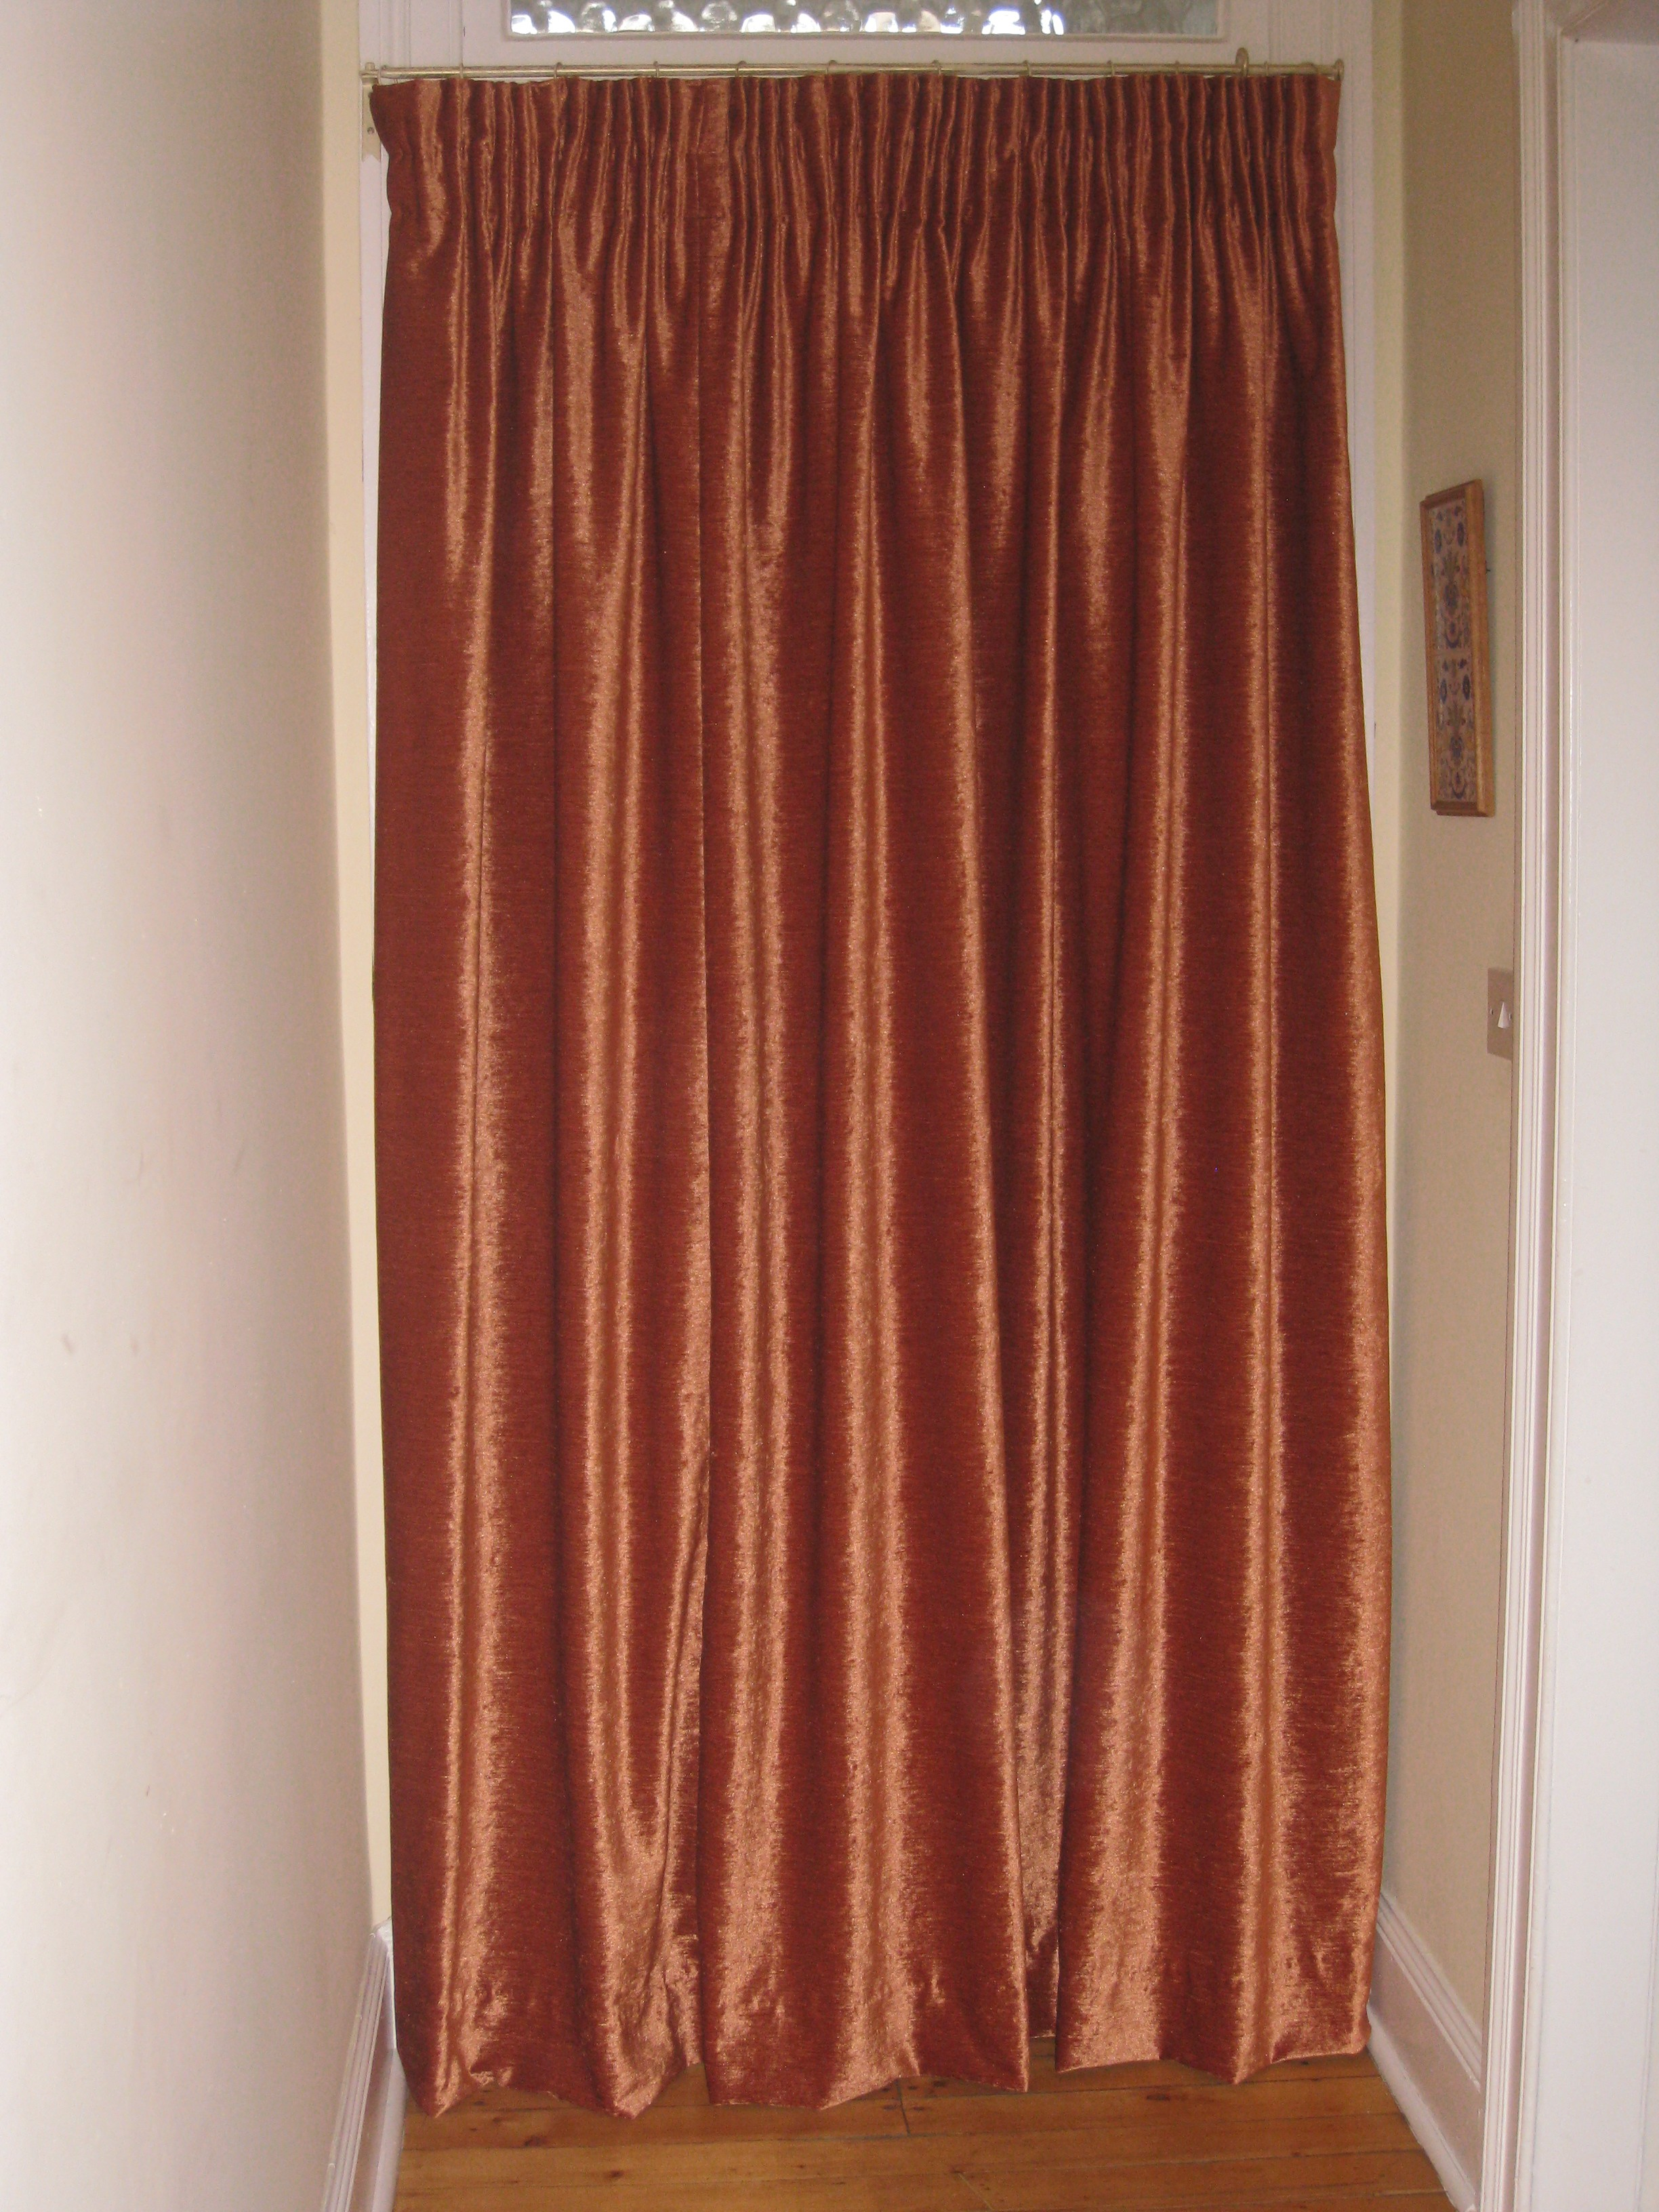 lined single curtain grey prd corry expand harry curtains door wincheshter winchester limited